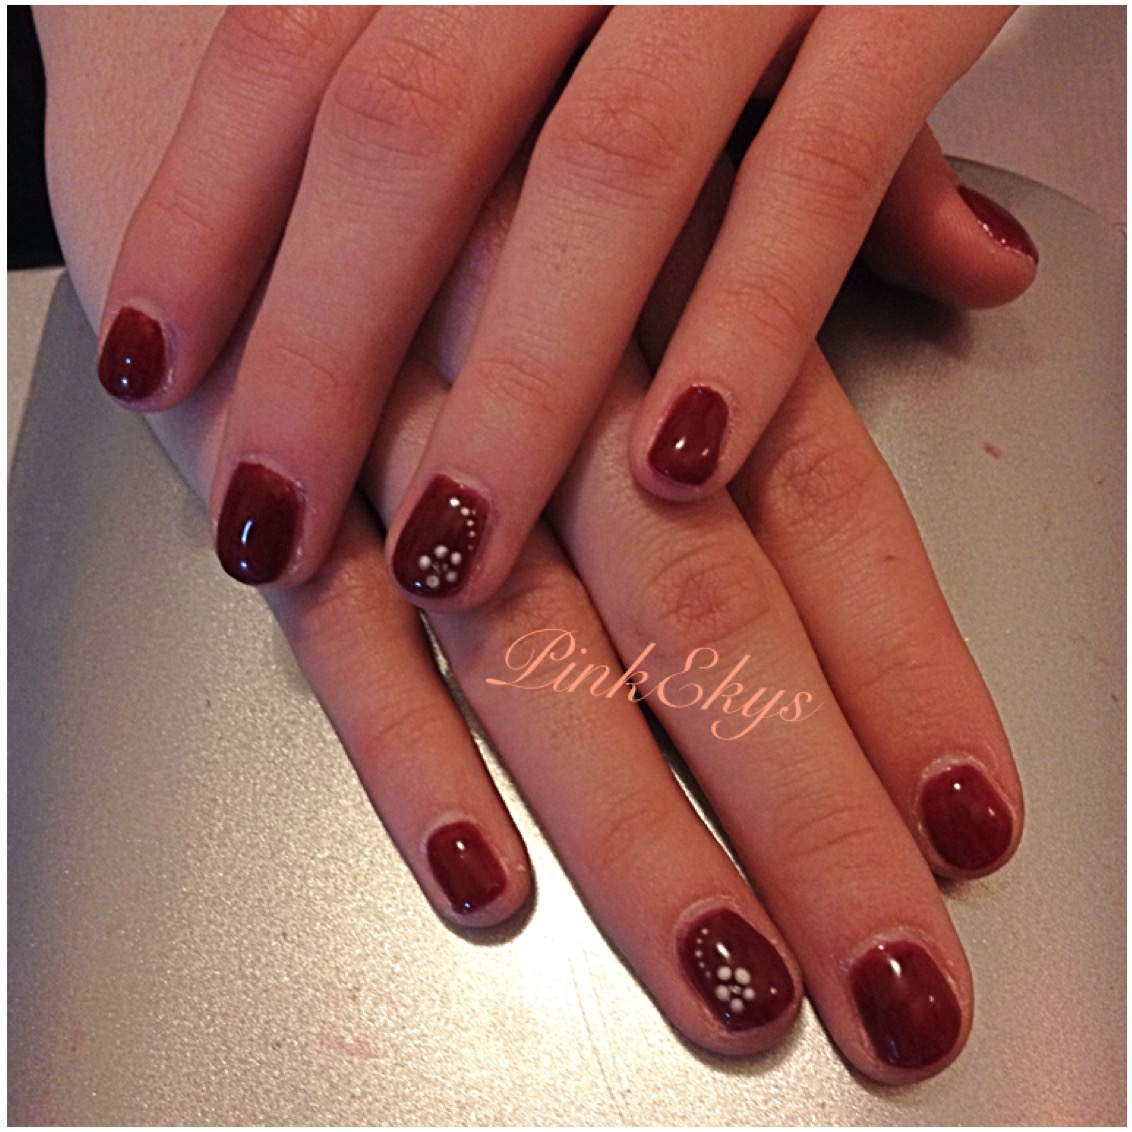 Pinkekys : Unghie in gel: Eva' s Passion by Estrosa